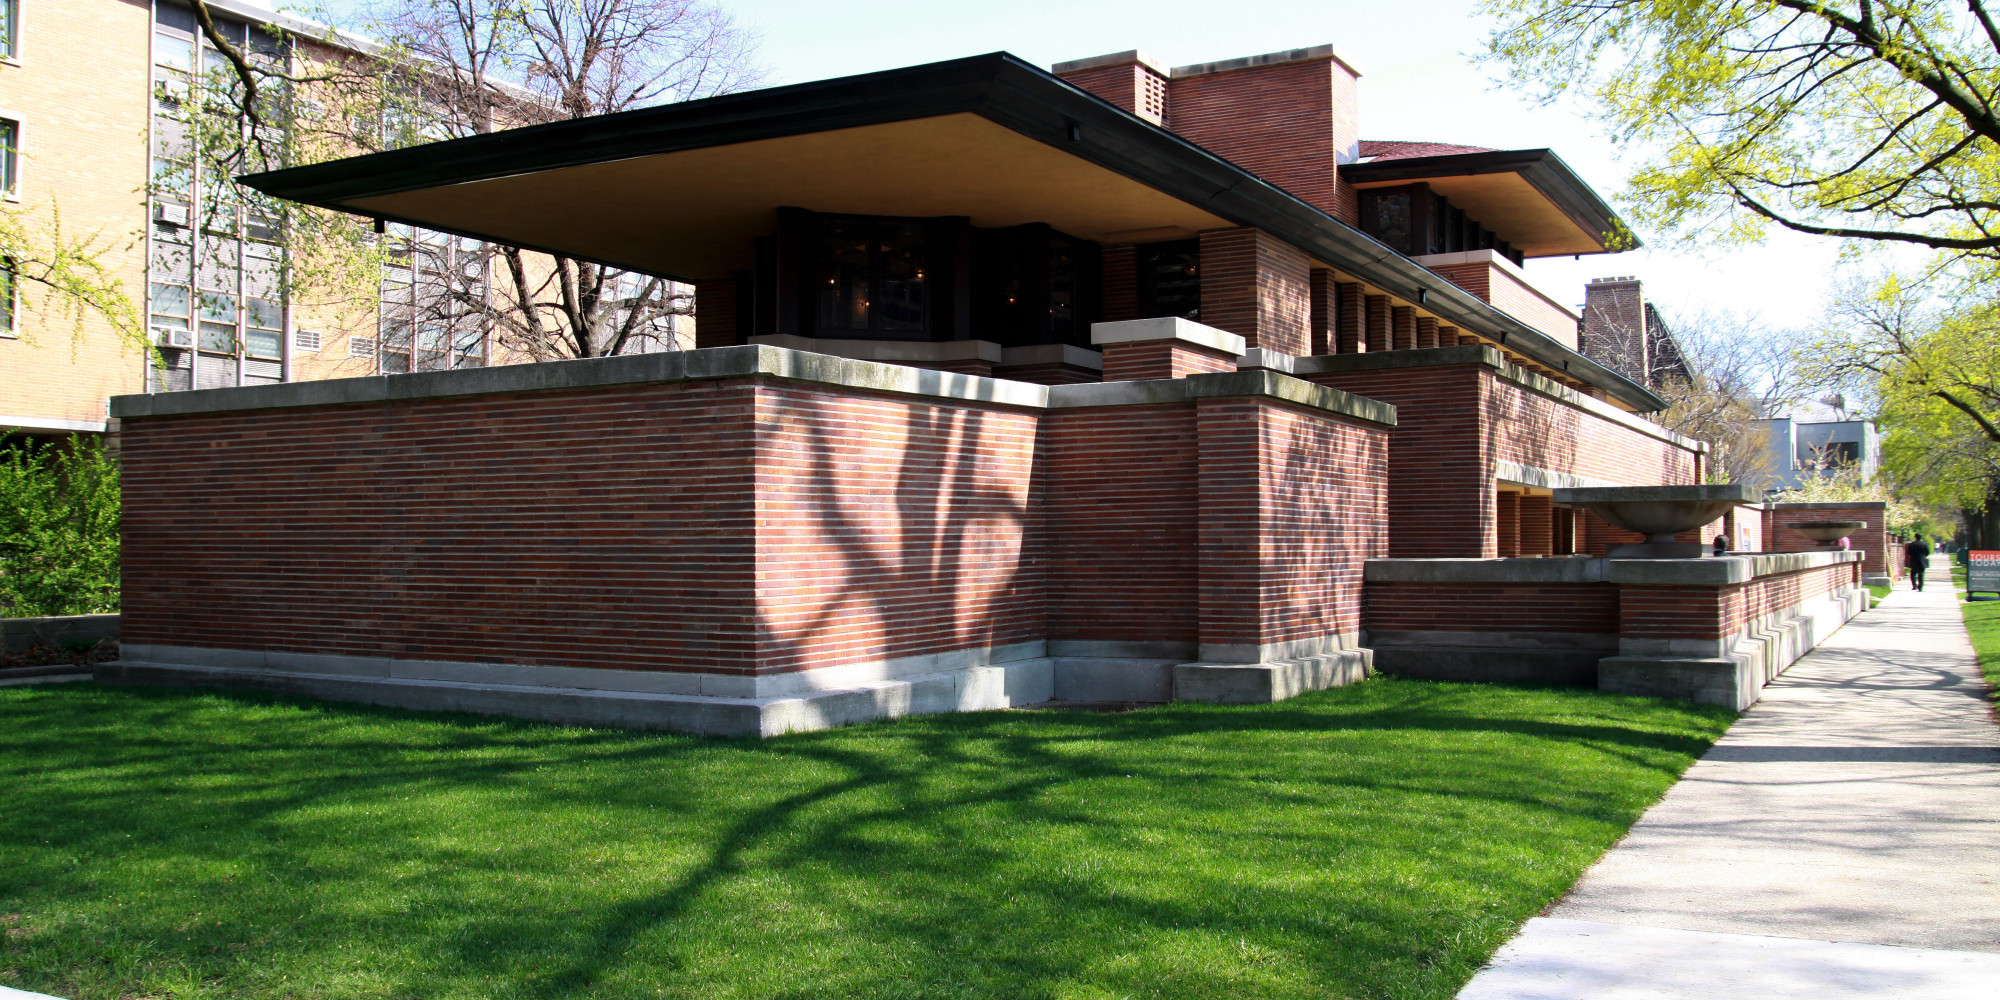 Frank lloyd wright died 55 years ago but his legacy lives for Frank lloyd wright house design